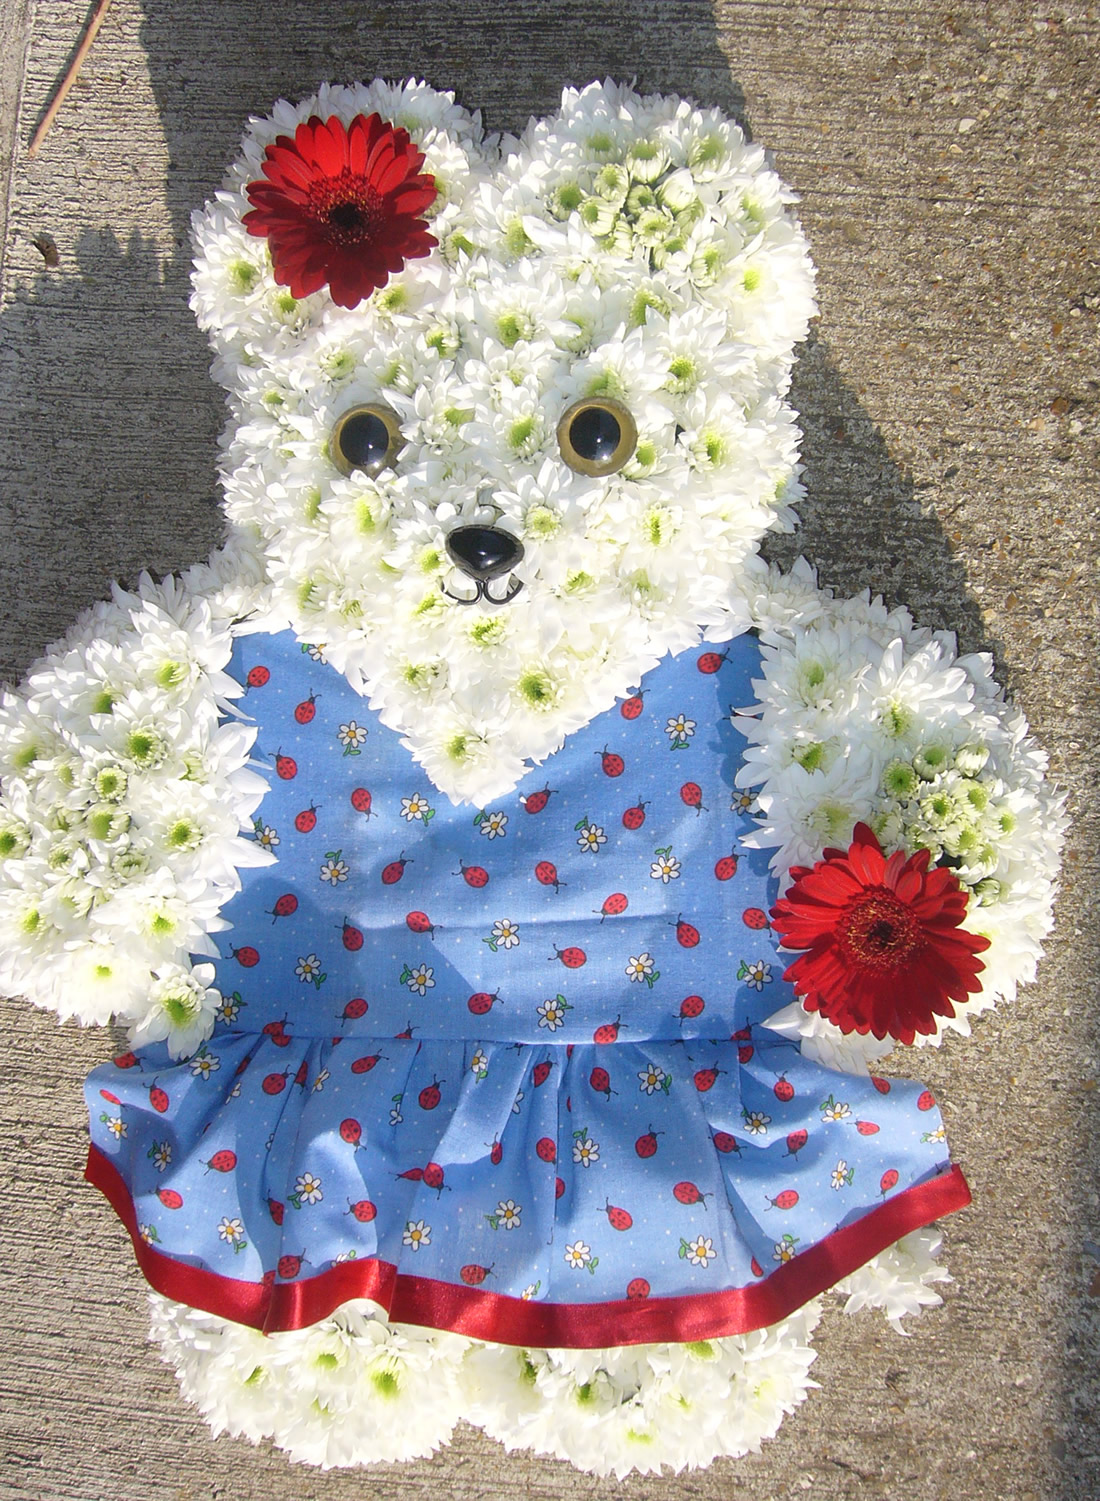 Driftwood Flowers - Teddy floral funeral tribute